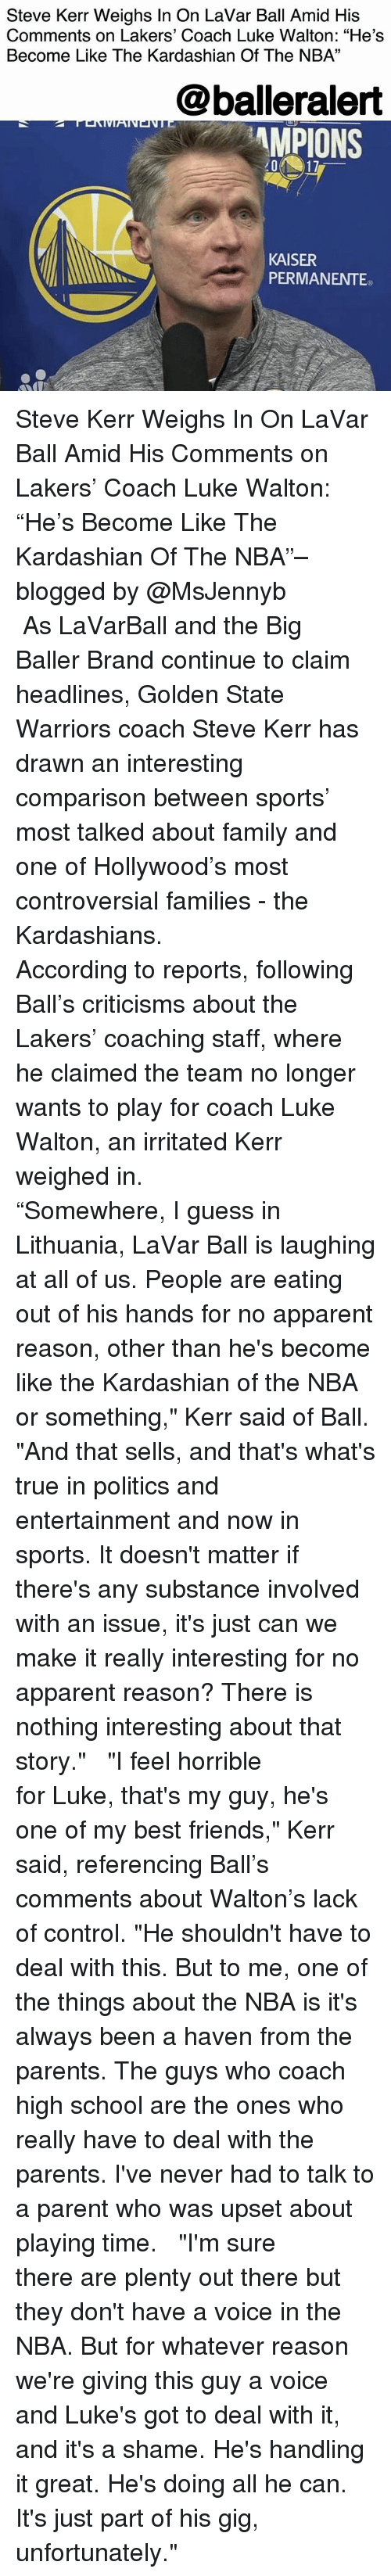 "Coaching: Steve Kerr Weighs In On LaVar Ball Amid His  Comments on Lakers' Coach Luke Walton: ""He's  Become Like The Kardashian Of The NBA""  13  @balleralert  MPIONS  KAISER  PERMANENTE Steve Kerr Weighs In On LaVar Ball Amid His Comments on Lakers' Coach Luke Walton: ""He's Become Like The Kardashian Of The NBA""– blogged by @MsJennyb ⠀⠀⠀⠀⠀⠀⠀ ⠀⠀⠀⠀⠀⠀⠀ As LaVarBall and the Big Baller Brand continue to claim headlines, Golden State Warriors coach Steve Kerr has drawn an interesting comparison between sports' most talked about family and one of Hollywood's most controversial families - the Kardashians. ⠀⠀⠀⠀⠀⠀⠀ ⠀⠀⠀⠀⠀⠀⠀ According to reports, following Ball's criticisms about the Lakers' coaching staff, where he claimed the team no longer wants to play for coach Luke Walton, an irritated Kerr weighed in. ⠀⠀⠀⠀⠀⠀⠀ ⠀⠀⠀⠀⠀⠀⠀ ""Somewhere, I guess in Lithuania, LaVar Ball is laughing at all of us. People are eating out of his hands for no apparent reason, other than he's become like the Kardashian of the NBA or something,"" Kerr said of Ball. ""And that sells, and that's what's true in politics and entertainment and now in sports. It doesn't matter if there's any substance involved with an issue, it's just can we make it really interesting for no apparent reason? There is nothing interesting about that story."" ⠀⠀⠀⠀⠀⠀⠀ ⠀⠀⠀⠀⠀⠀⠀ ""I feel horrible for Luke, that's my guy, he's one of my best friends,"" Kerr said, referencing Ball's comments about Walton's lack of control. ""He shouldn't have to deal with this. But to me, one of the things about the NBA is it's always been a haven from the parents. The guys who coach high school are the ones who really have to deal with the parents. I've never had to talk to a parent who was upset about playing time. ⠀⠀⠀⠀⠀⠀⠀ ⠀⠀⠀⠀⠀⠀⠀ ""I'm sure there are plenty out there but they don't have a voice in the NBA. But for whatever reason we're giving this guy a voice and Luke's got to deal with it, and it's a shame. He's handling it great. He's doing all he can. It's just part of his gig, unfortunately."""